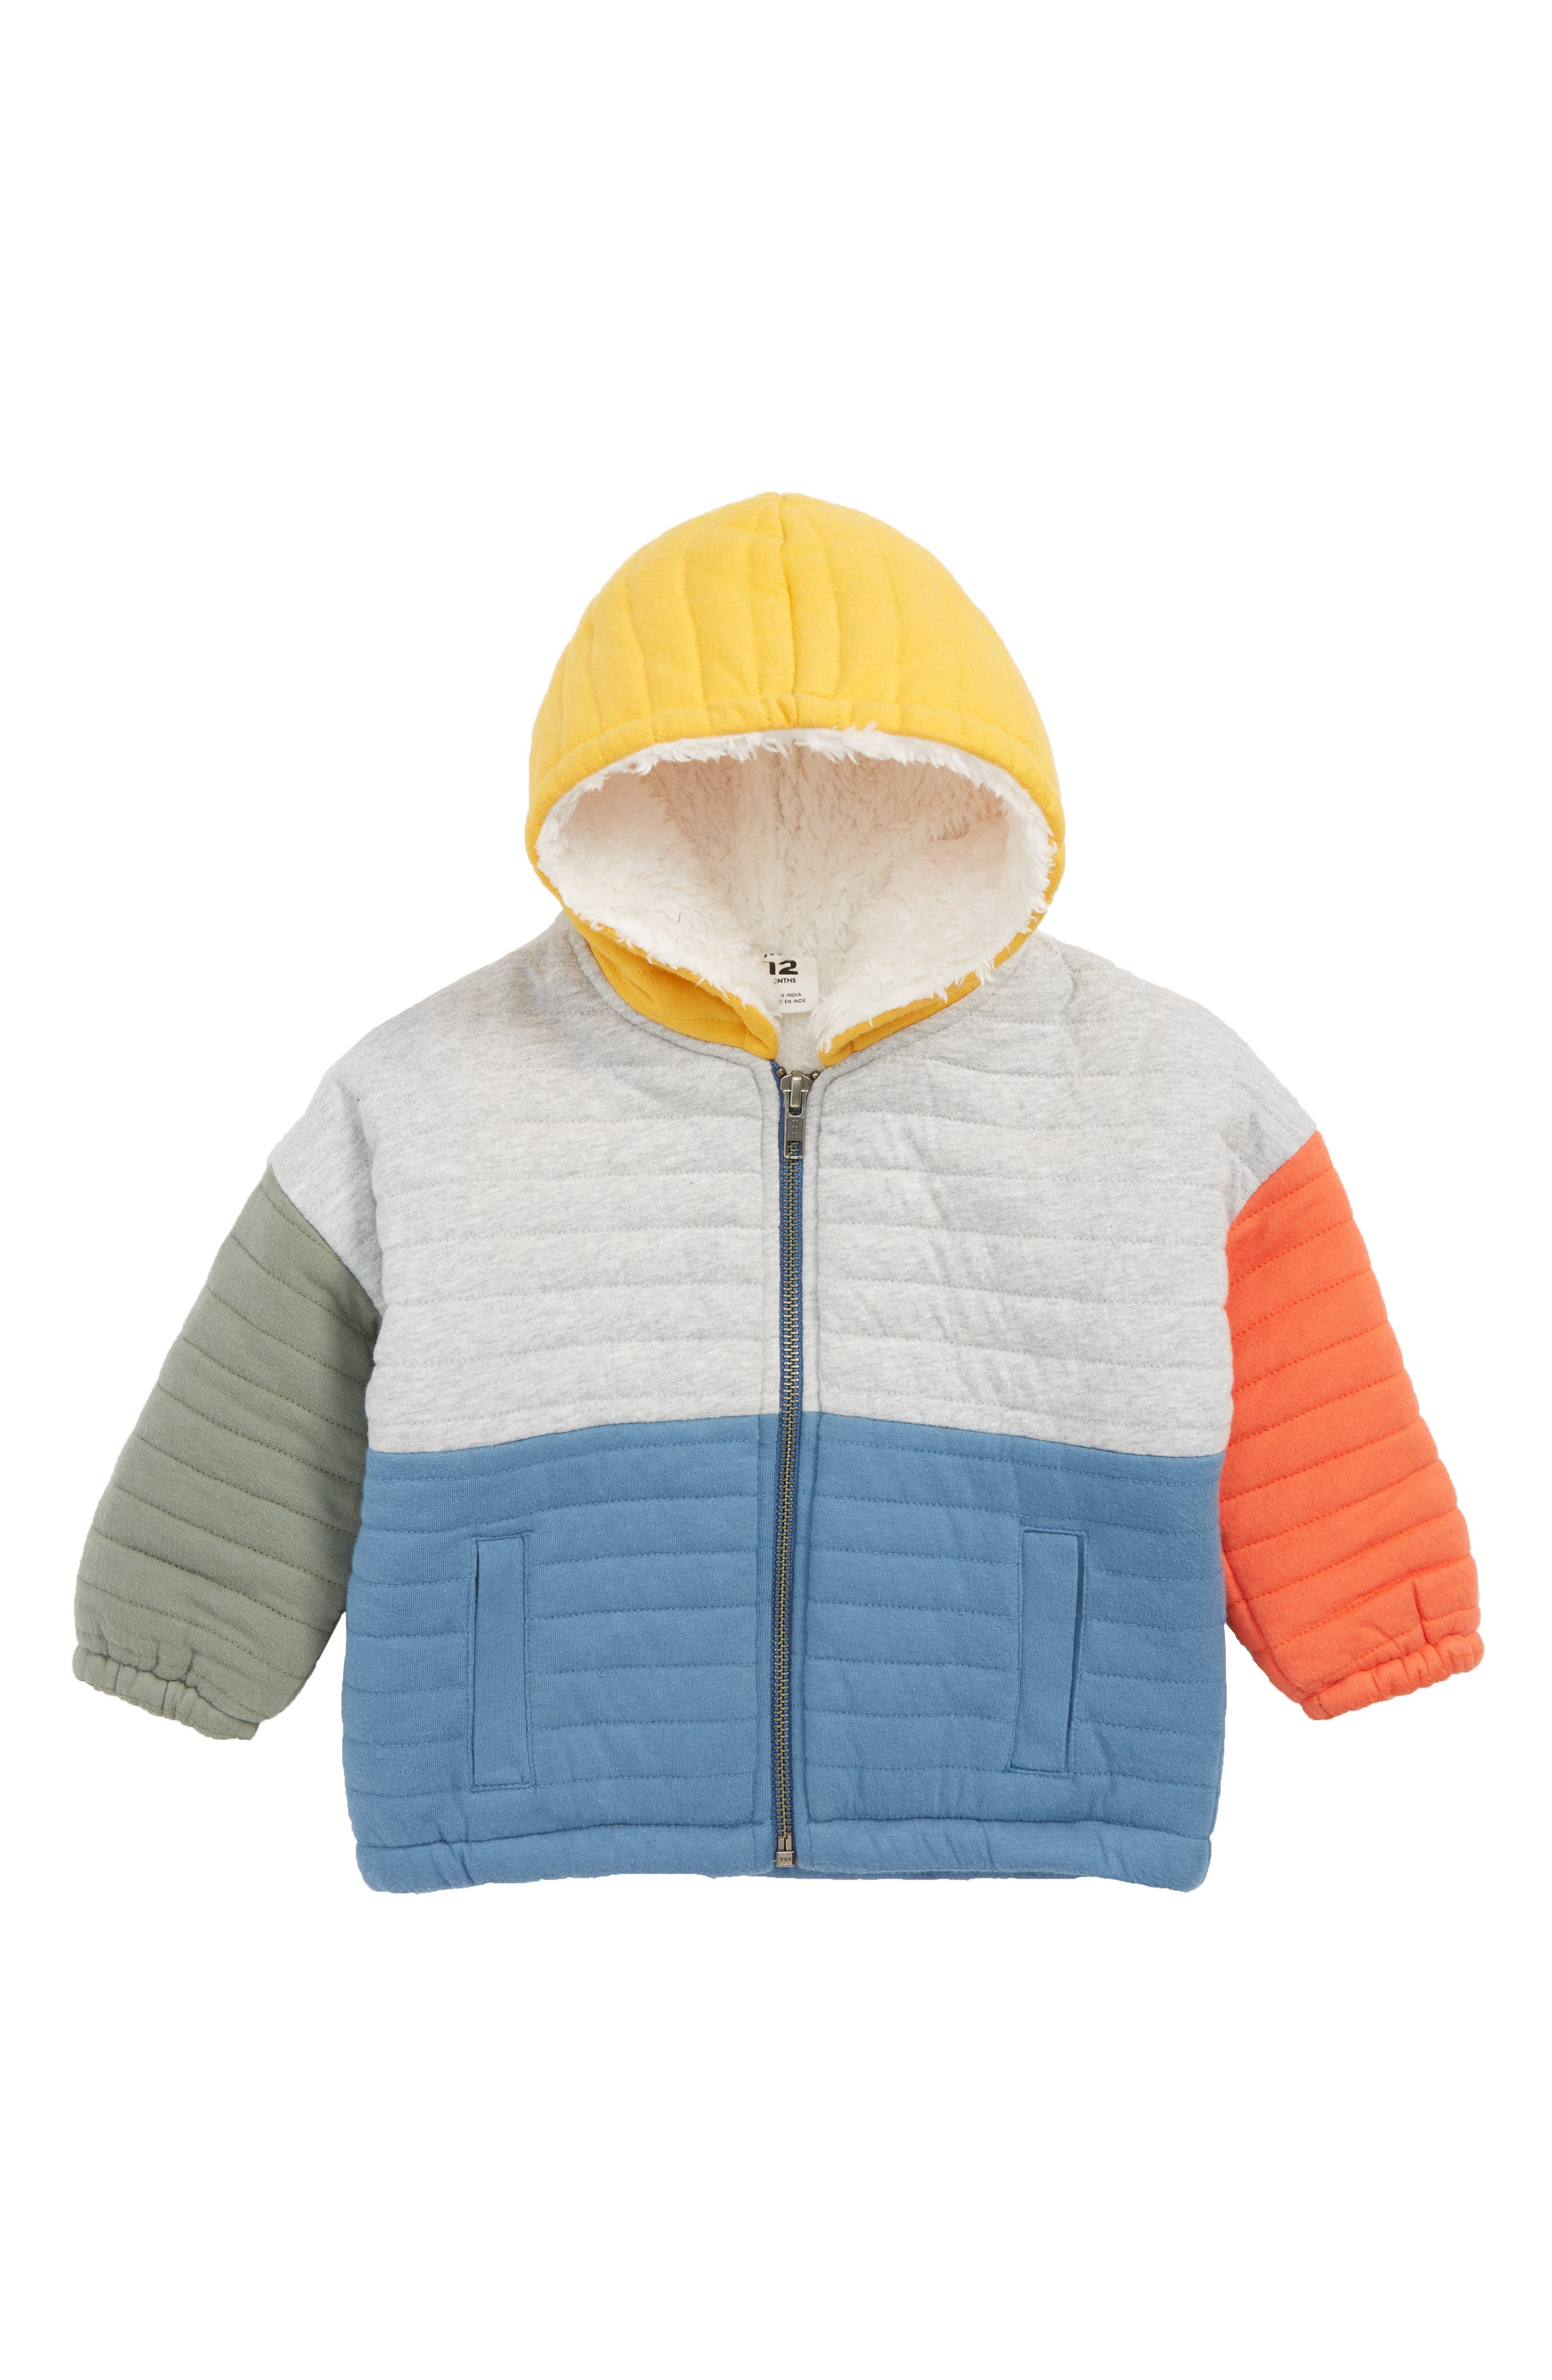 Quilted Jacket with Faux Fur Lining,                         Main,                         color, GREY ASH HEATHER- BLUE